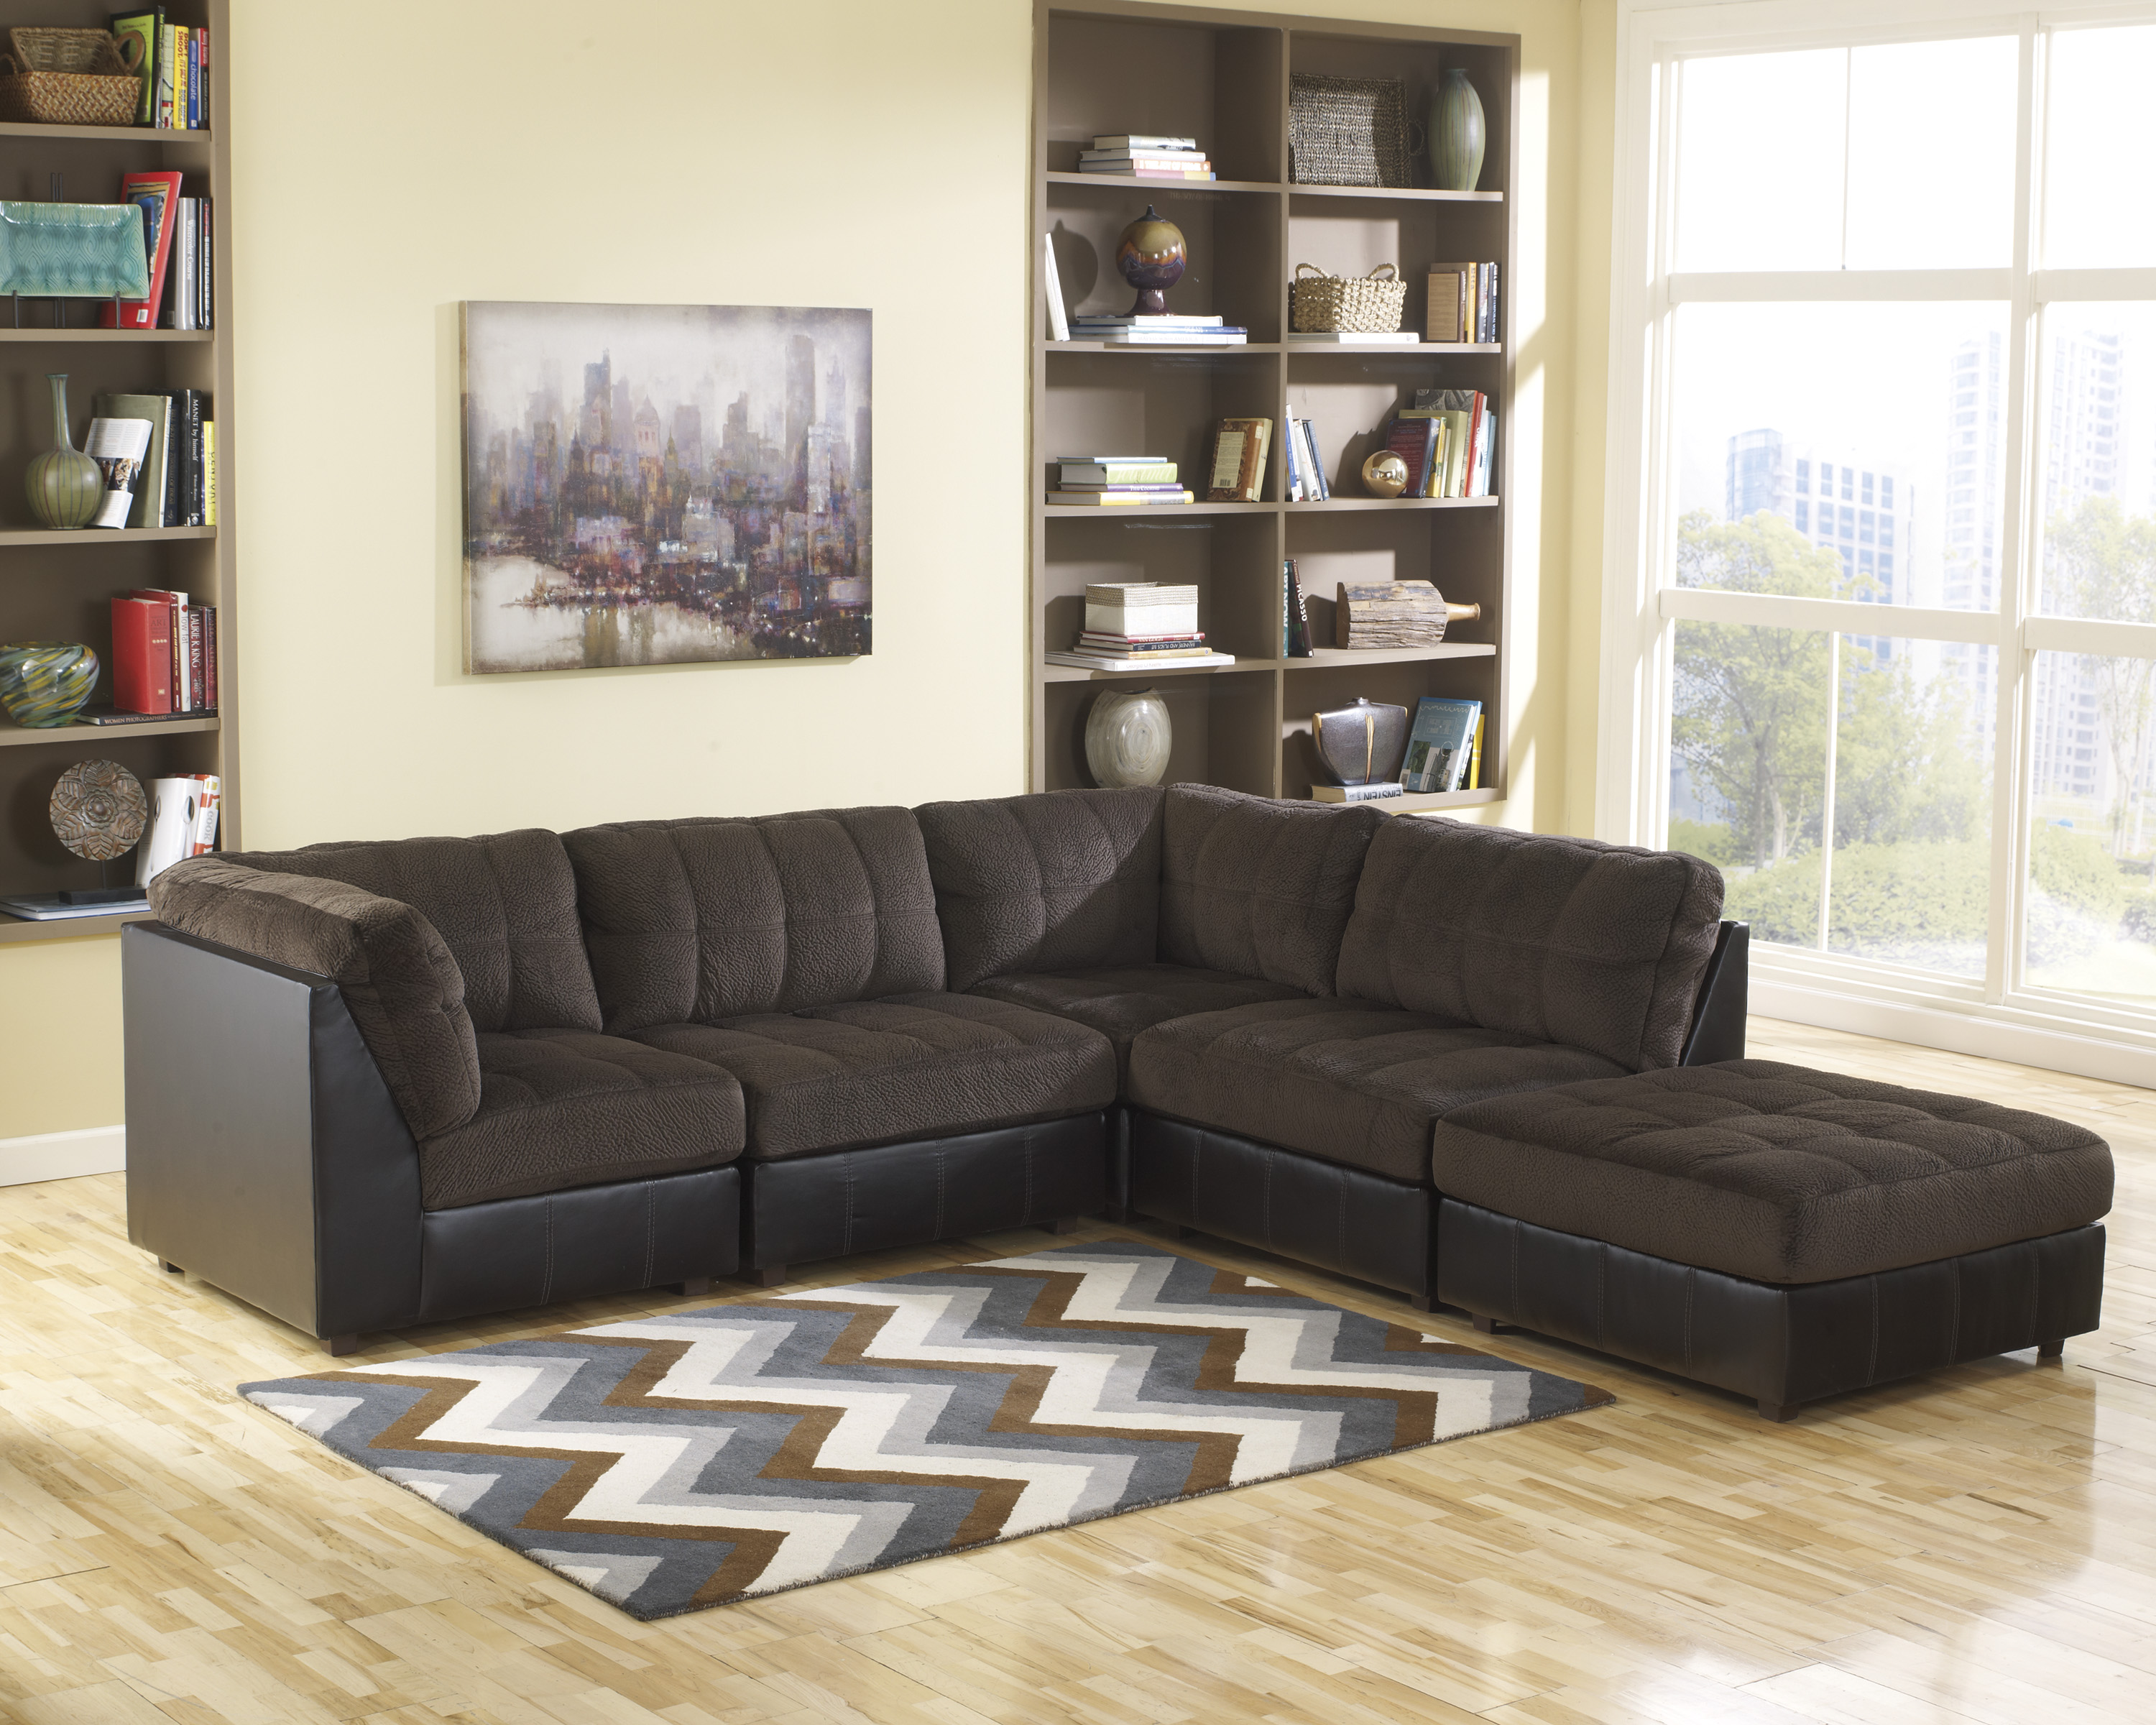 Buy Furniture With Bad Credit Image Titled Buy Furniture With Bad Credit Step 2 Buy Bedroom